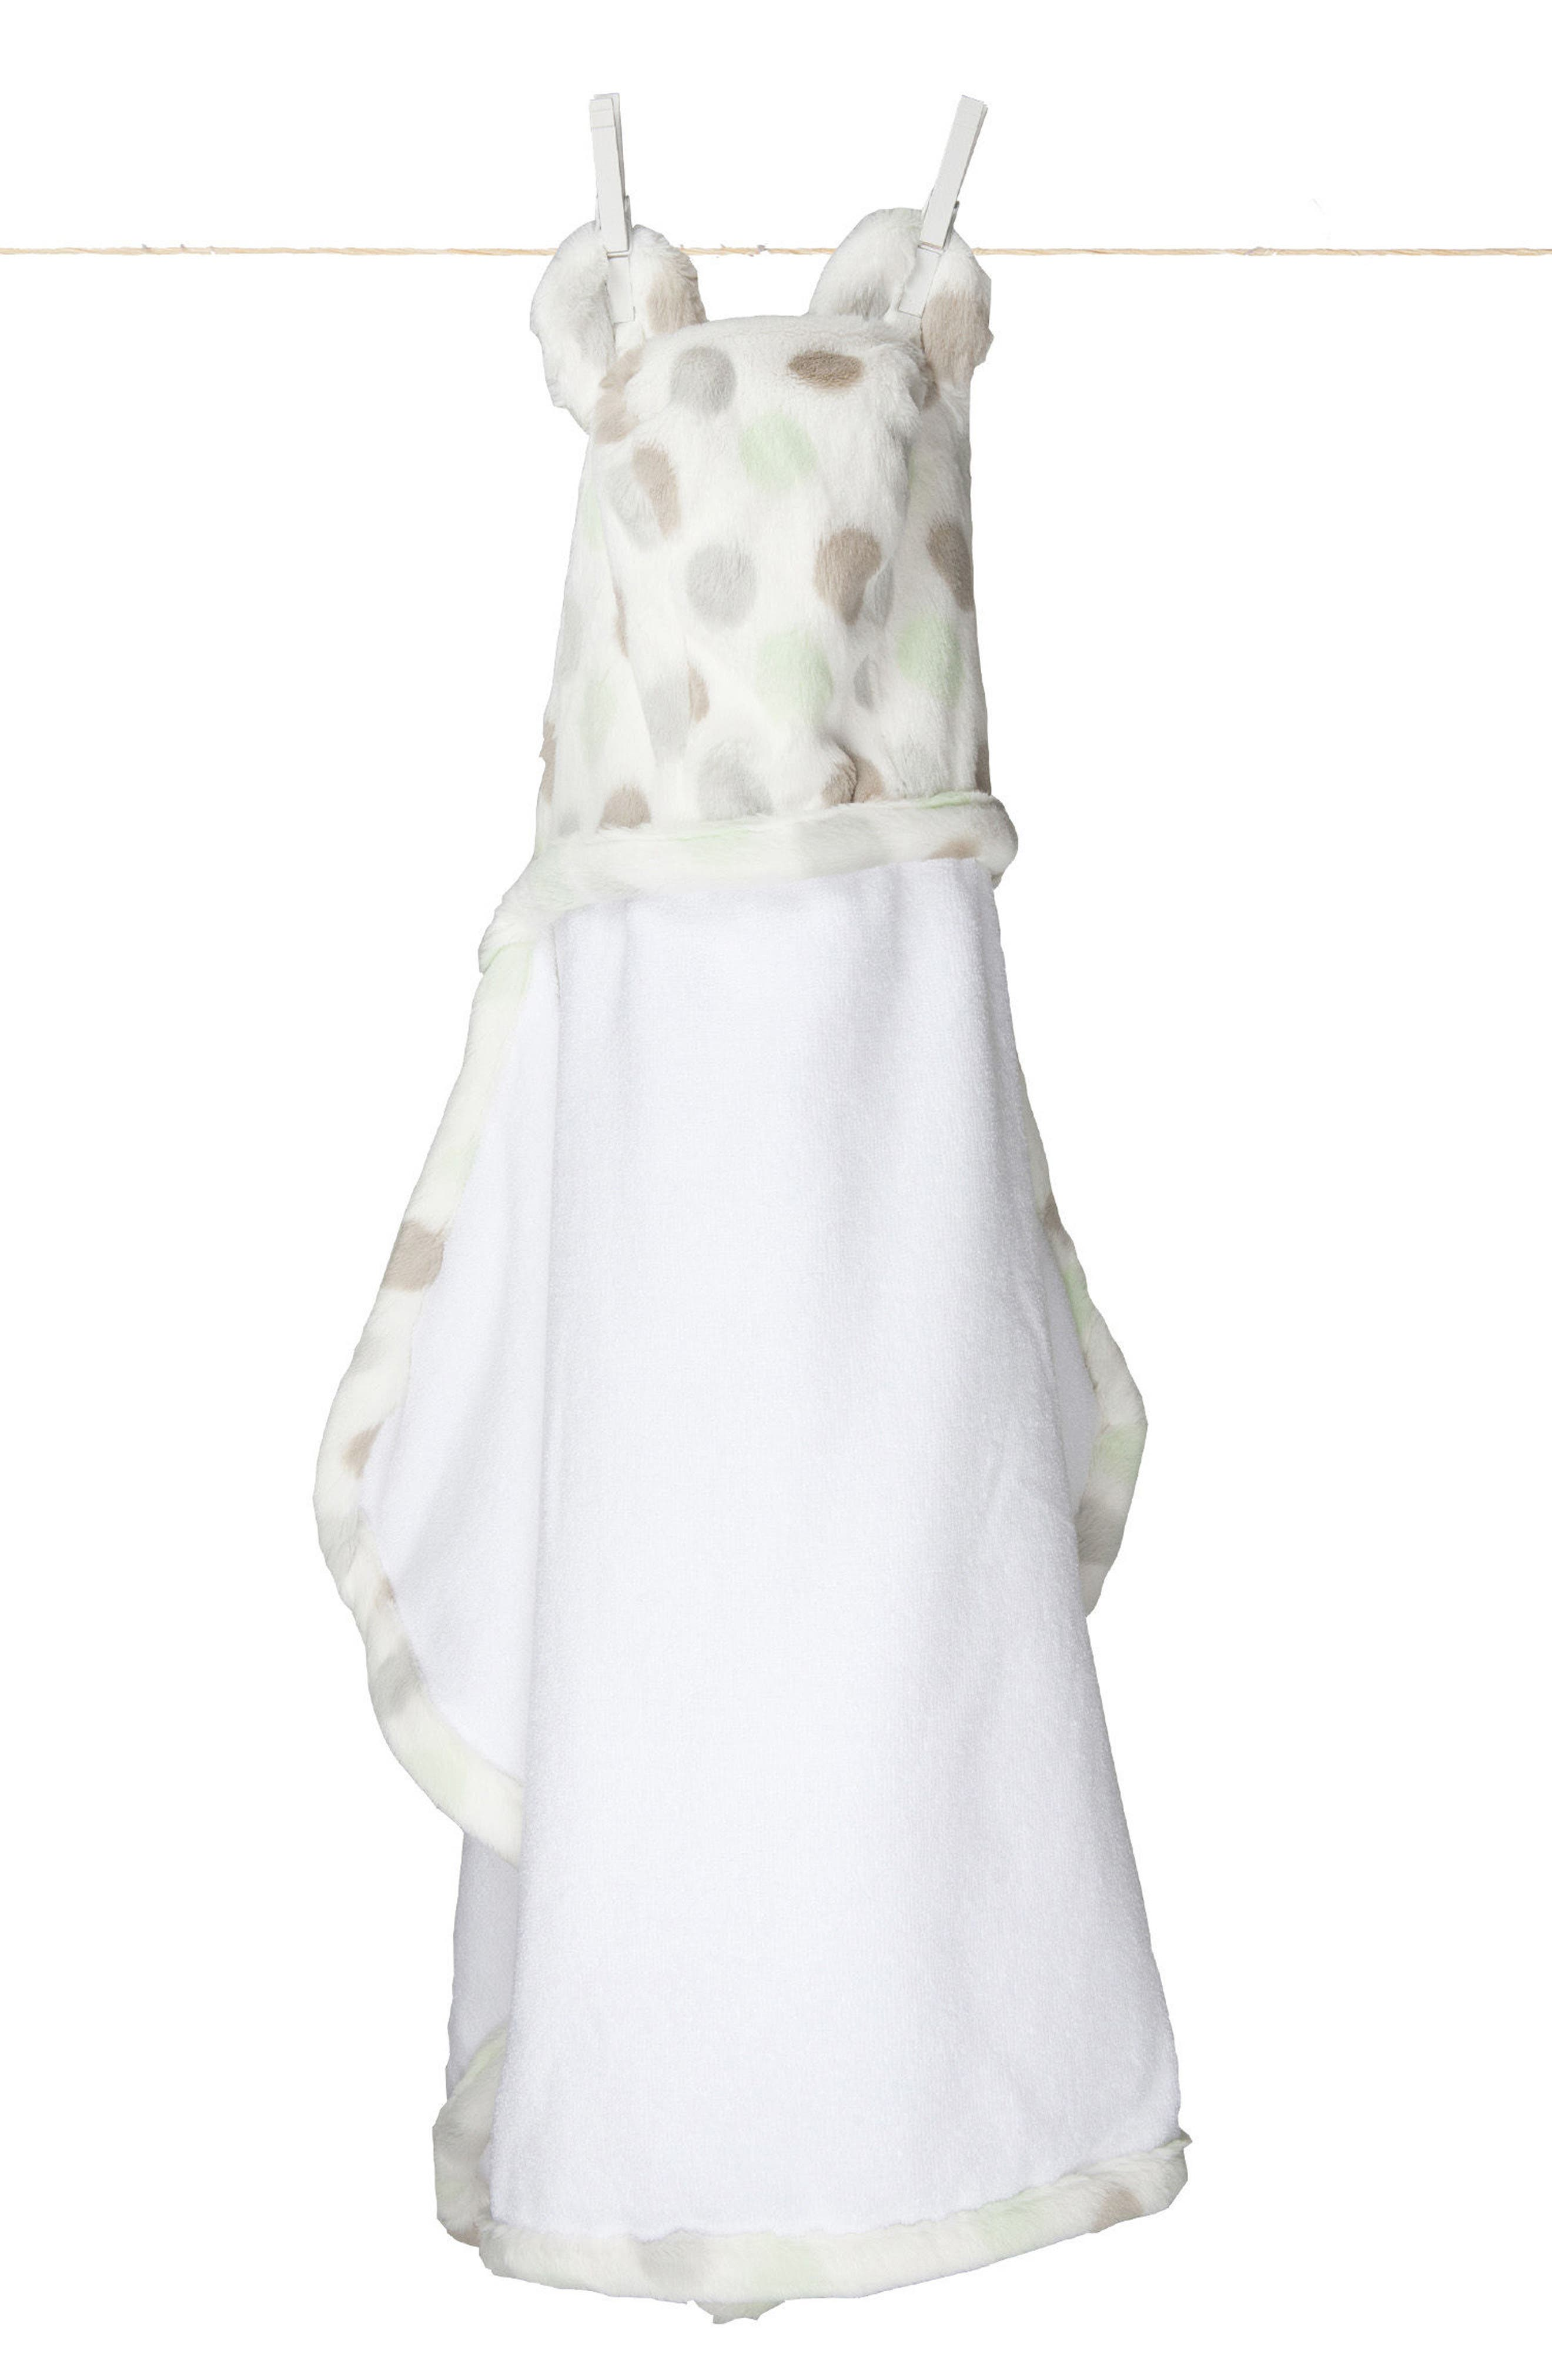 'Luxe Dot' Hooded Towel,                             Main thumbnail 1, color,                             CELADON